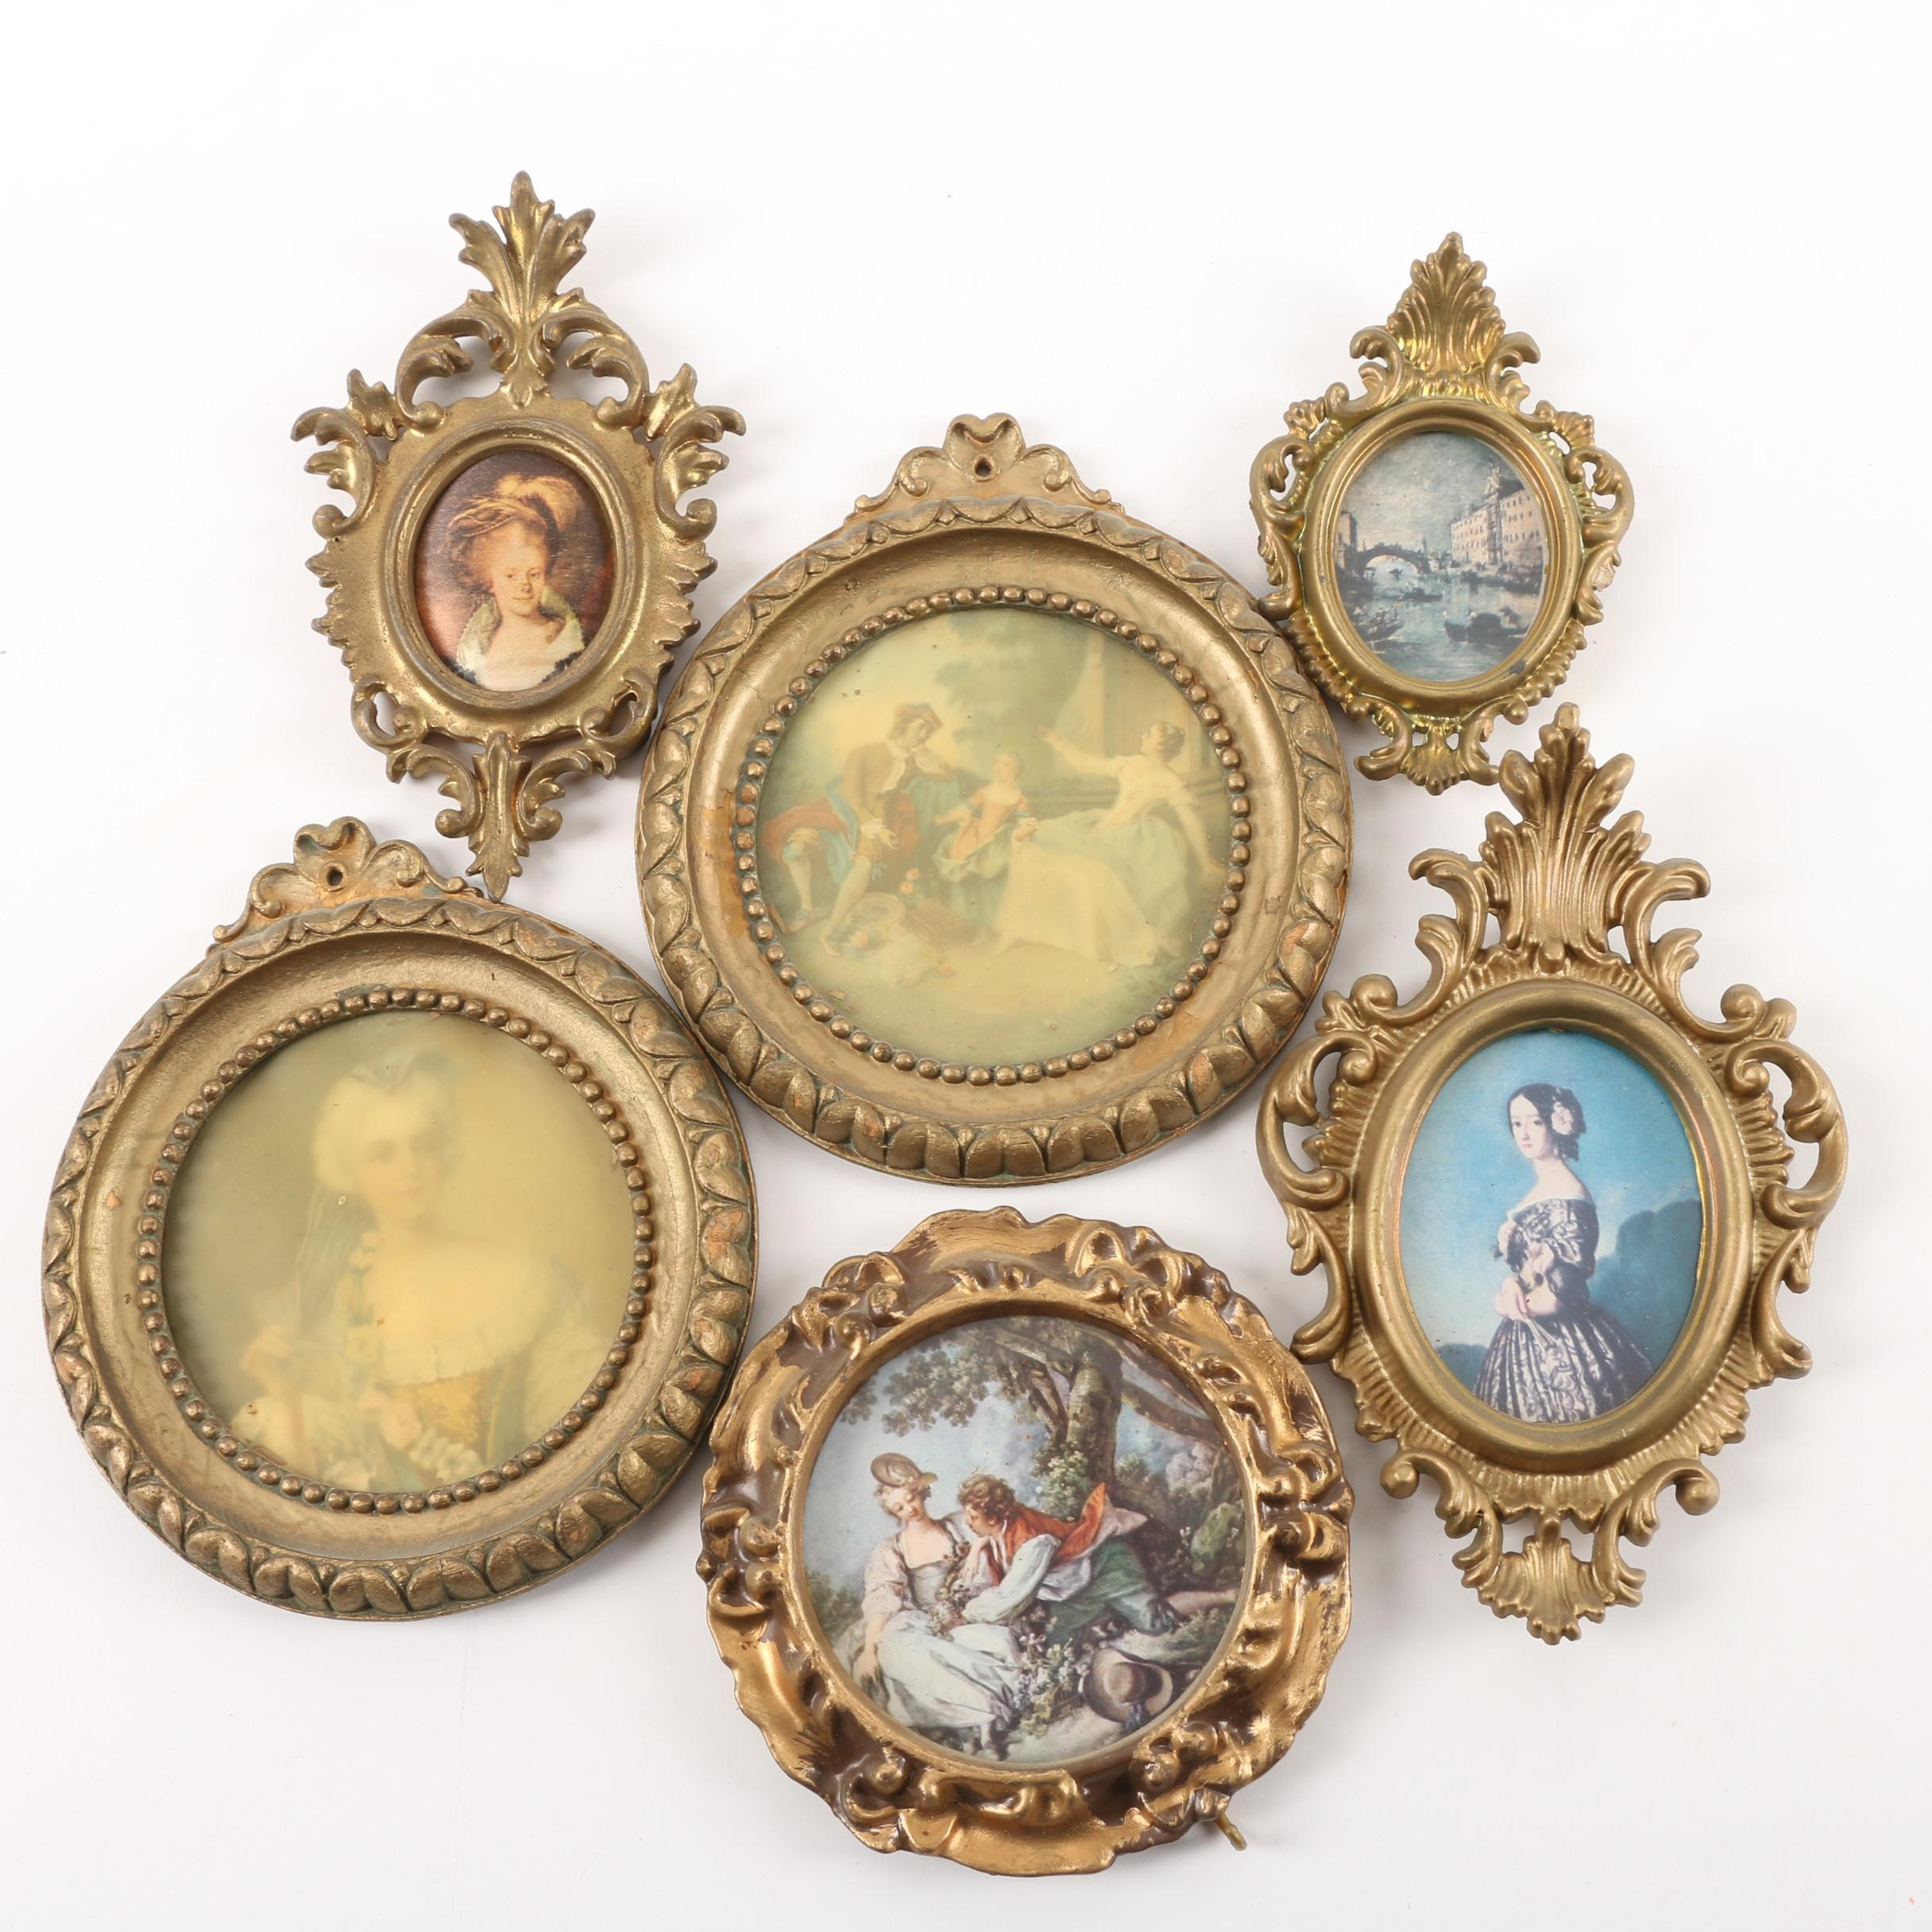 Vintage Reproduction Prints in Plastic and Wood Frames